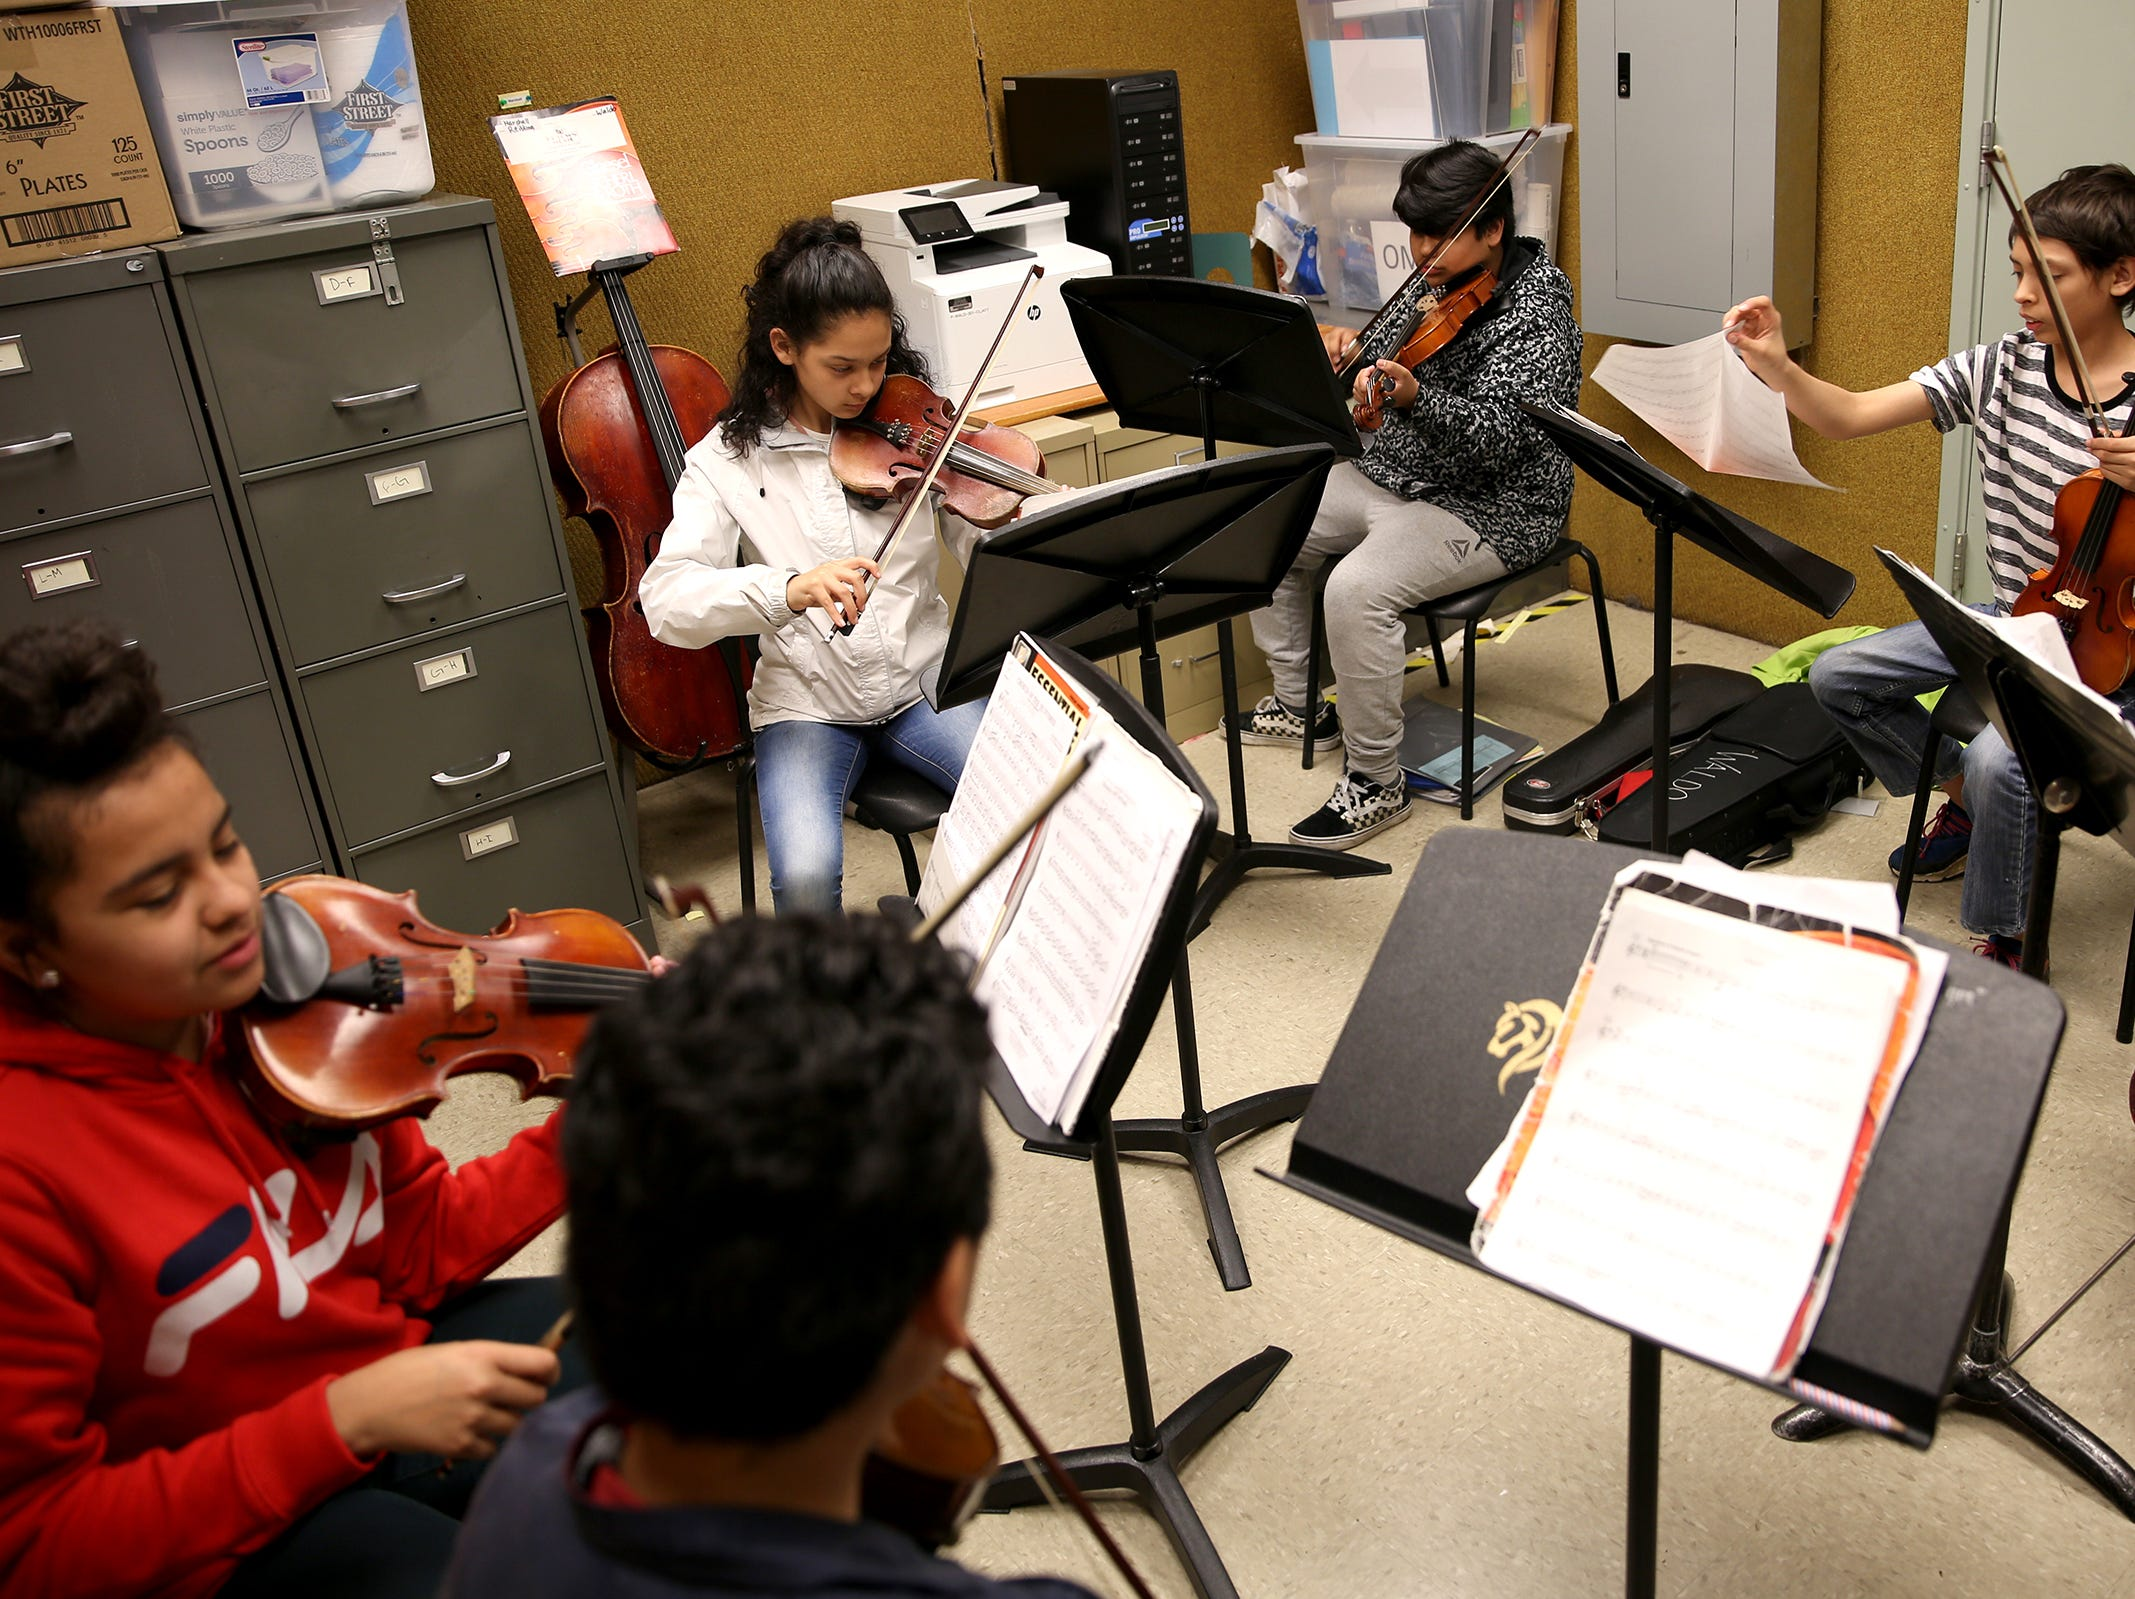 Students participate in the Music Lessons Project, which offers private or small group lessons to students in Title I schools, at Waldo Middle School on April 19, 2019.